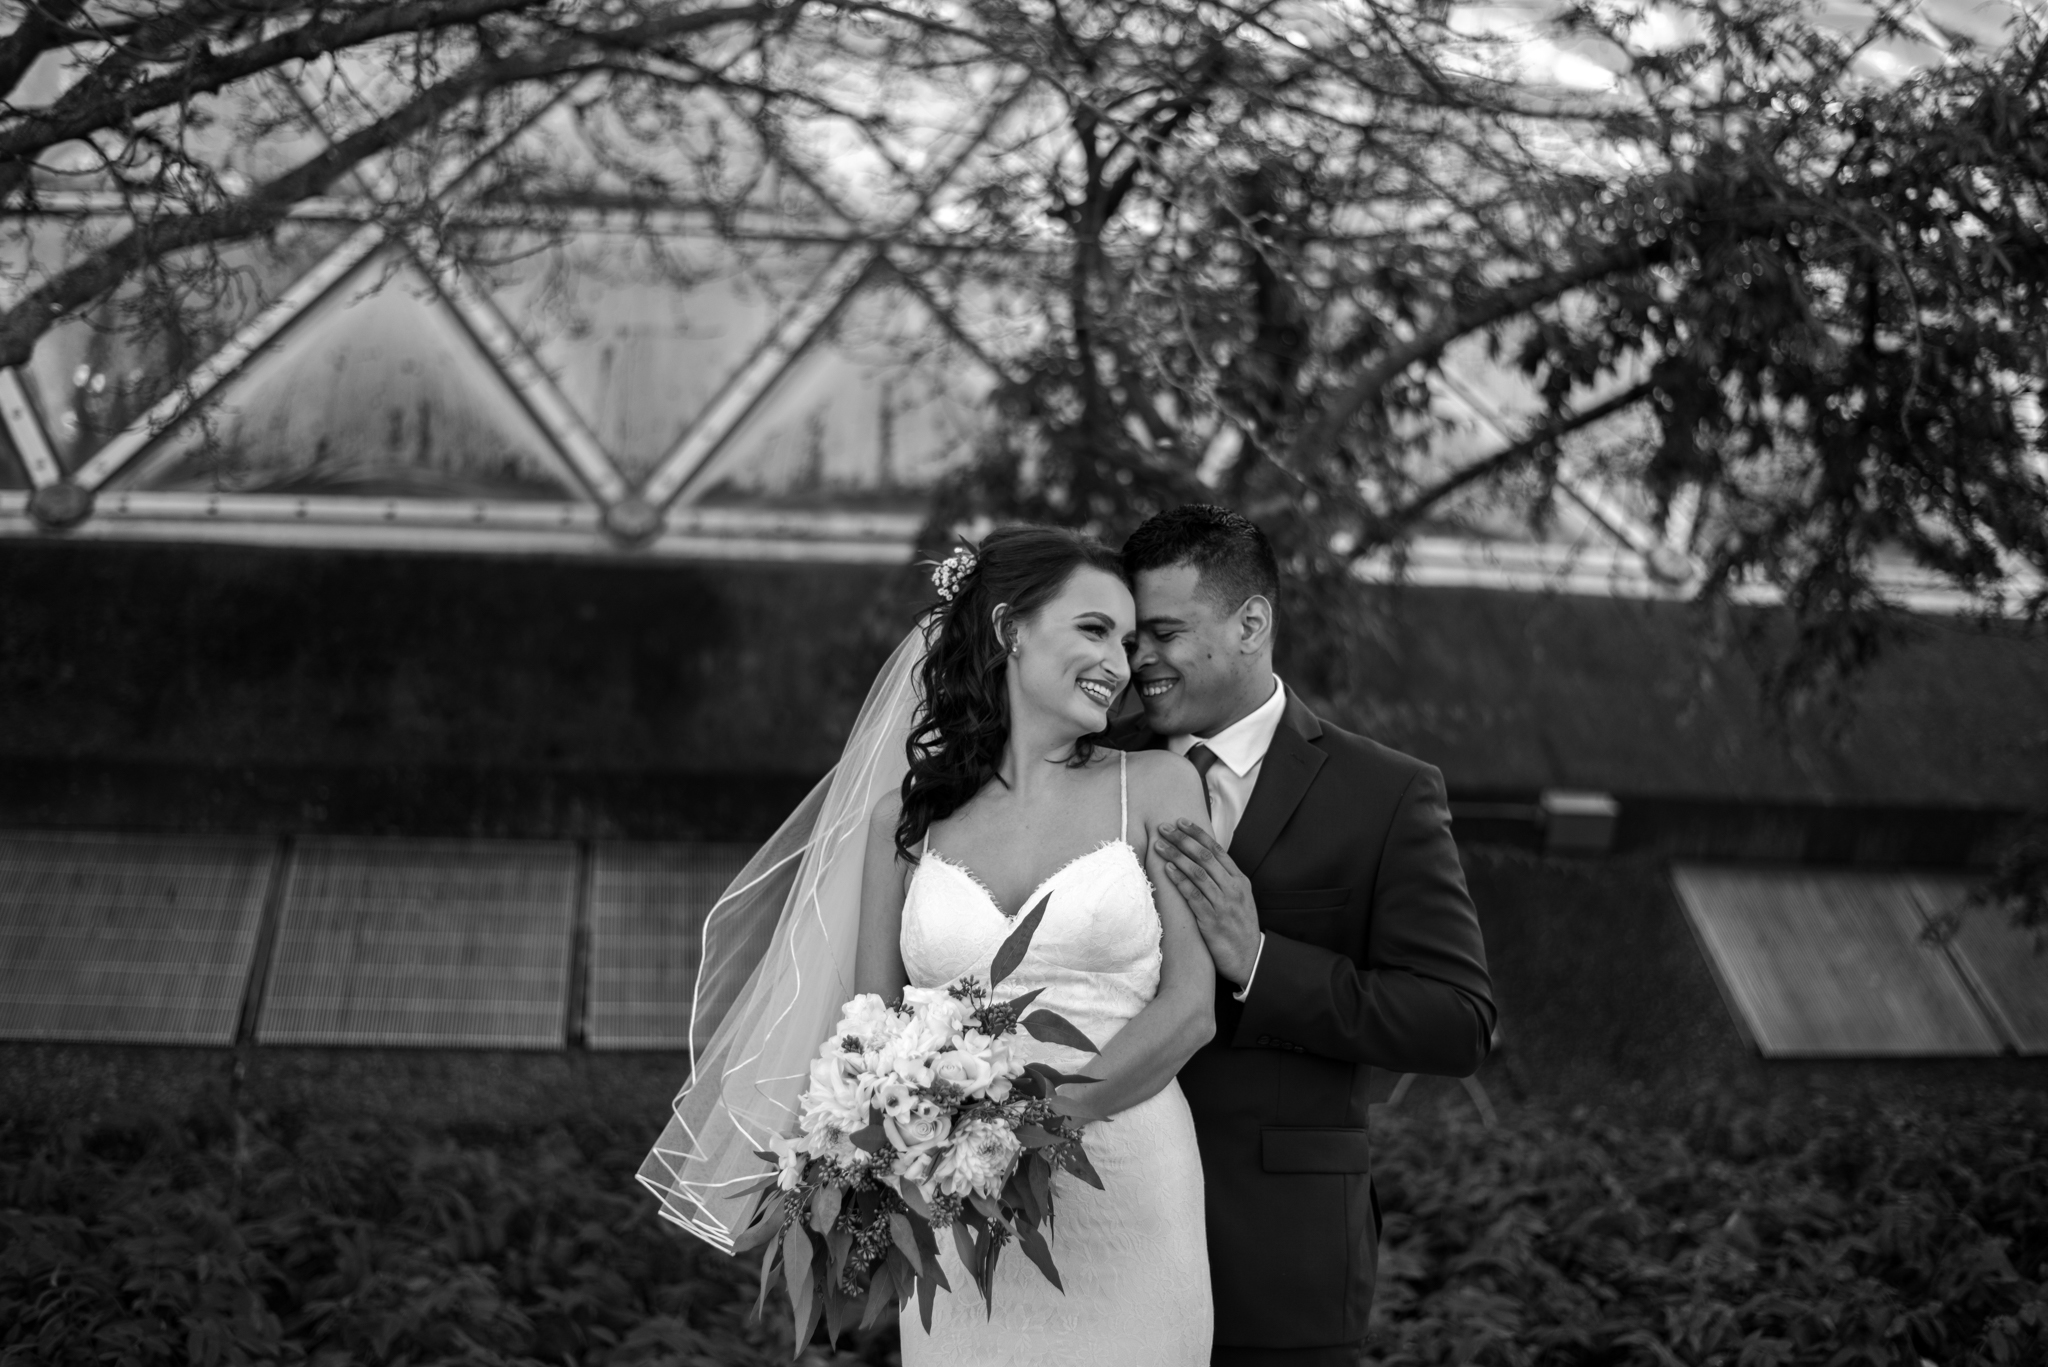 Queen Elizabeth Park Wedding Photographer-19.jpg